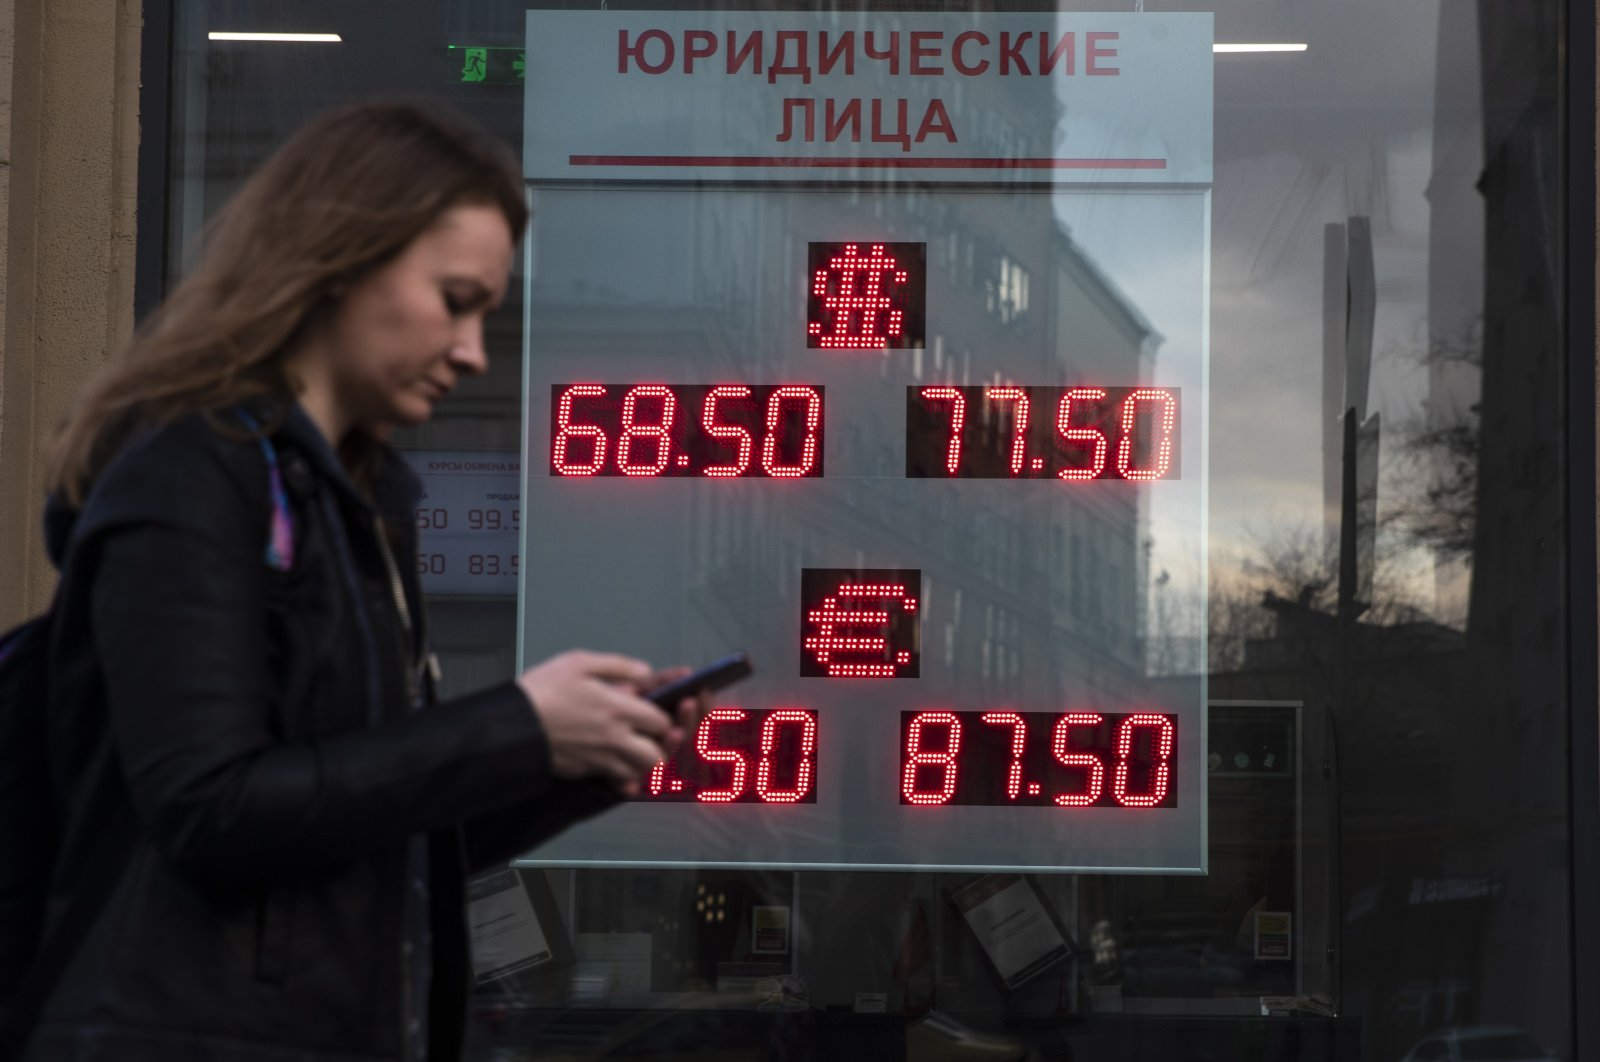 A woman walks past an currency exchange office screen displaying the exchange rates of U.S. Dollar and Euro to Russian Rubles, in Moscow, Russia, Monday, March 9, 2020. (AP Photo)